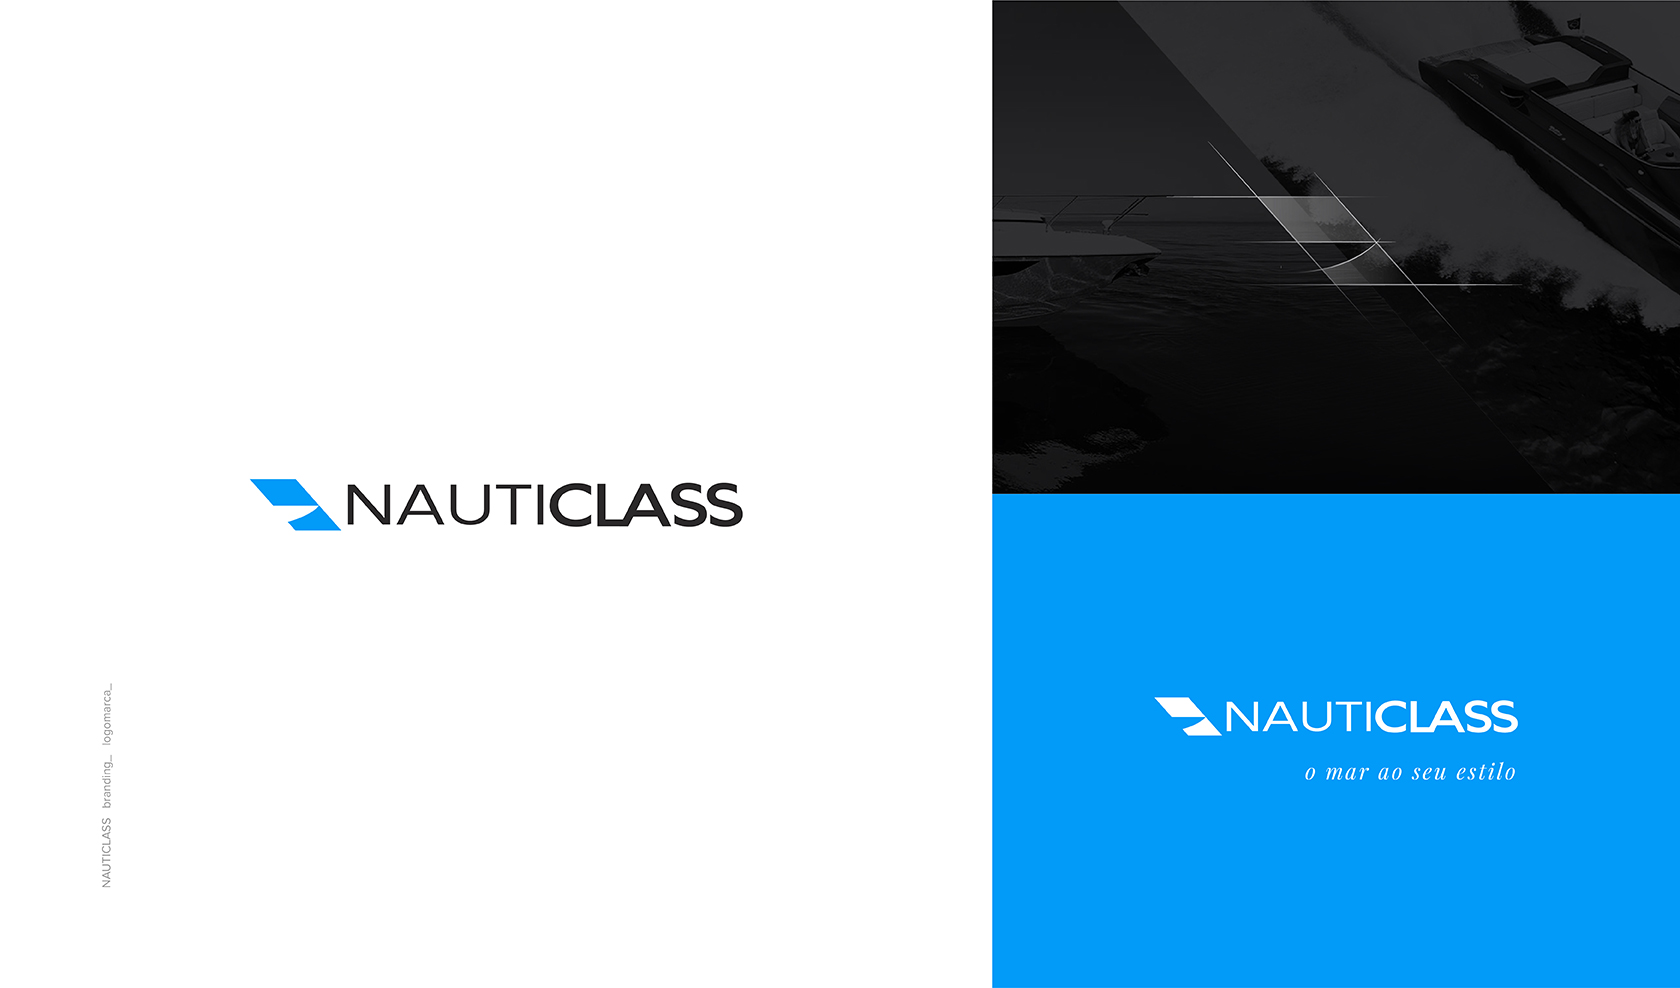 NautiCLASS